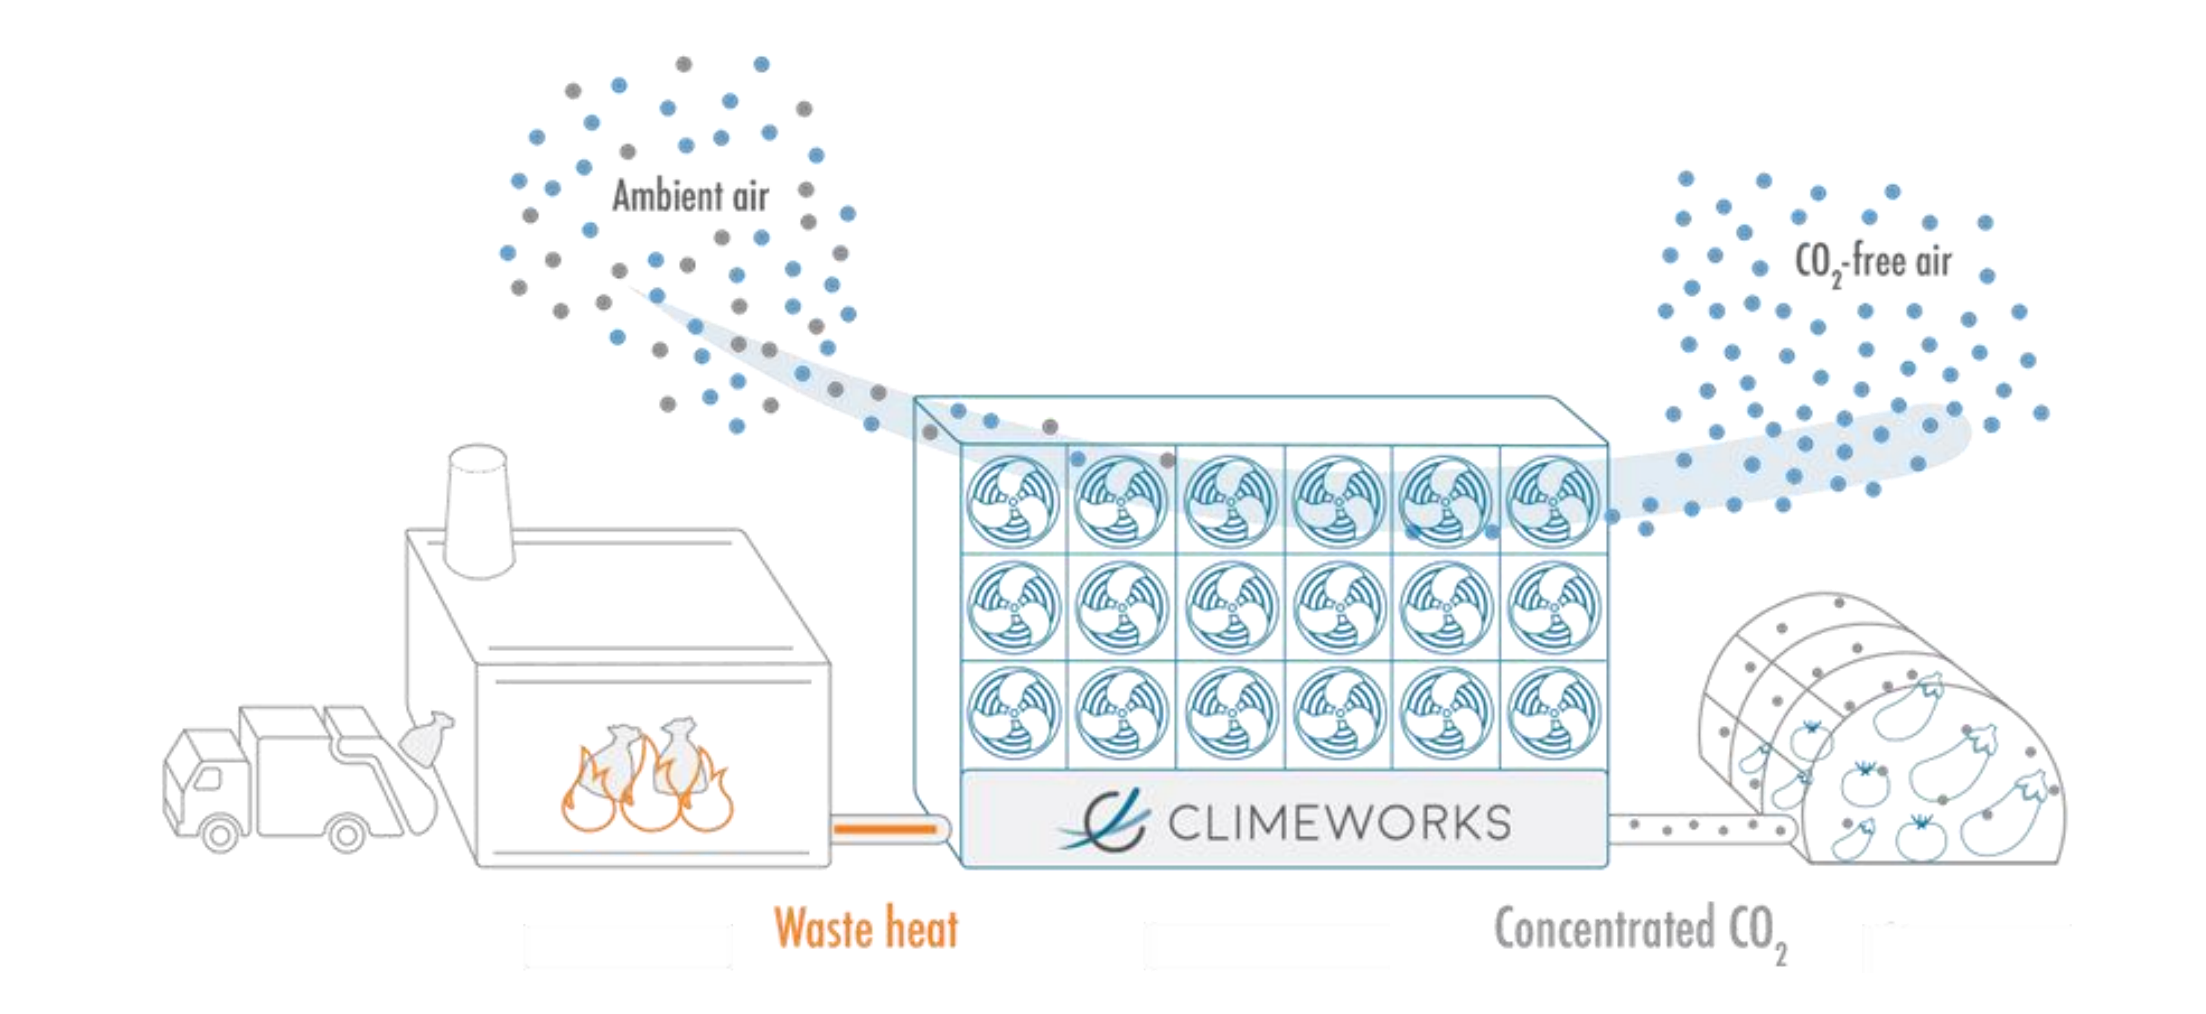 CO2 air capture in a commercial waste recovery facility